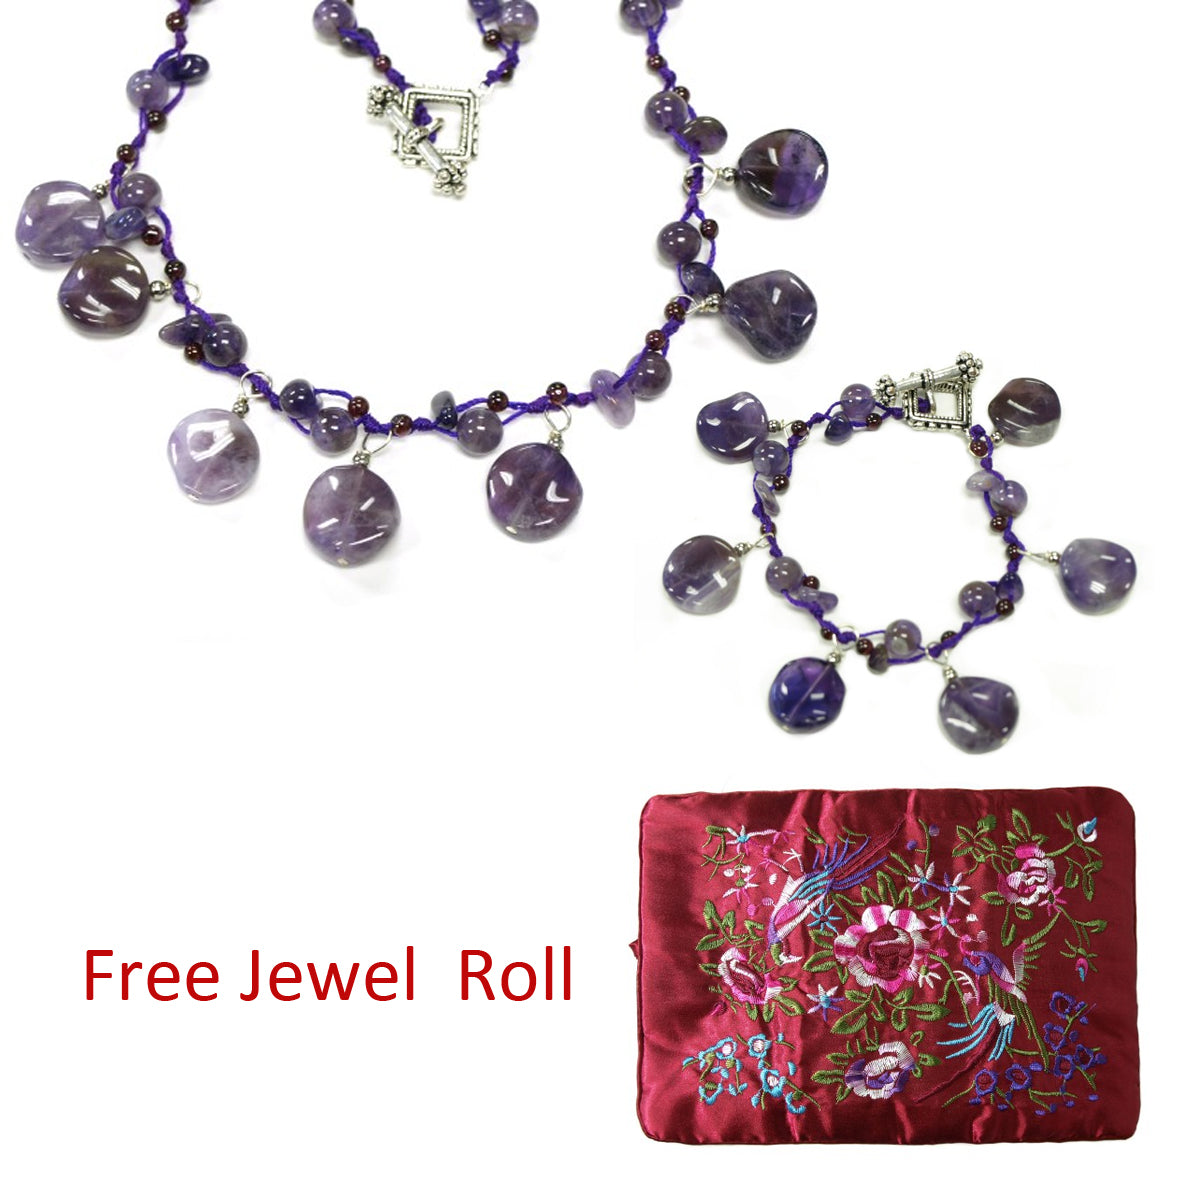 Purple Quartz Necklace and Bracelet Jewelry Set + Large Burgundy Silk Embroidered Jewelry Roll